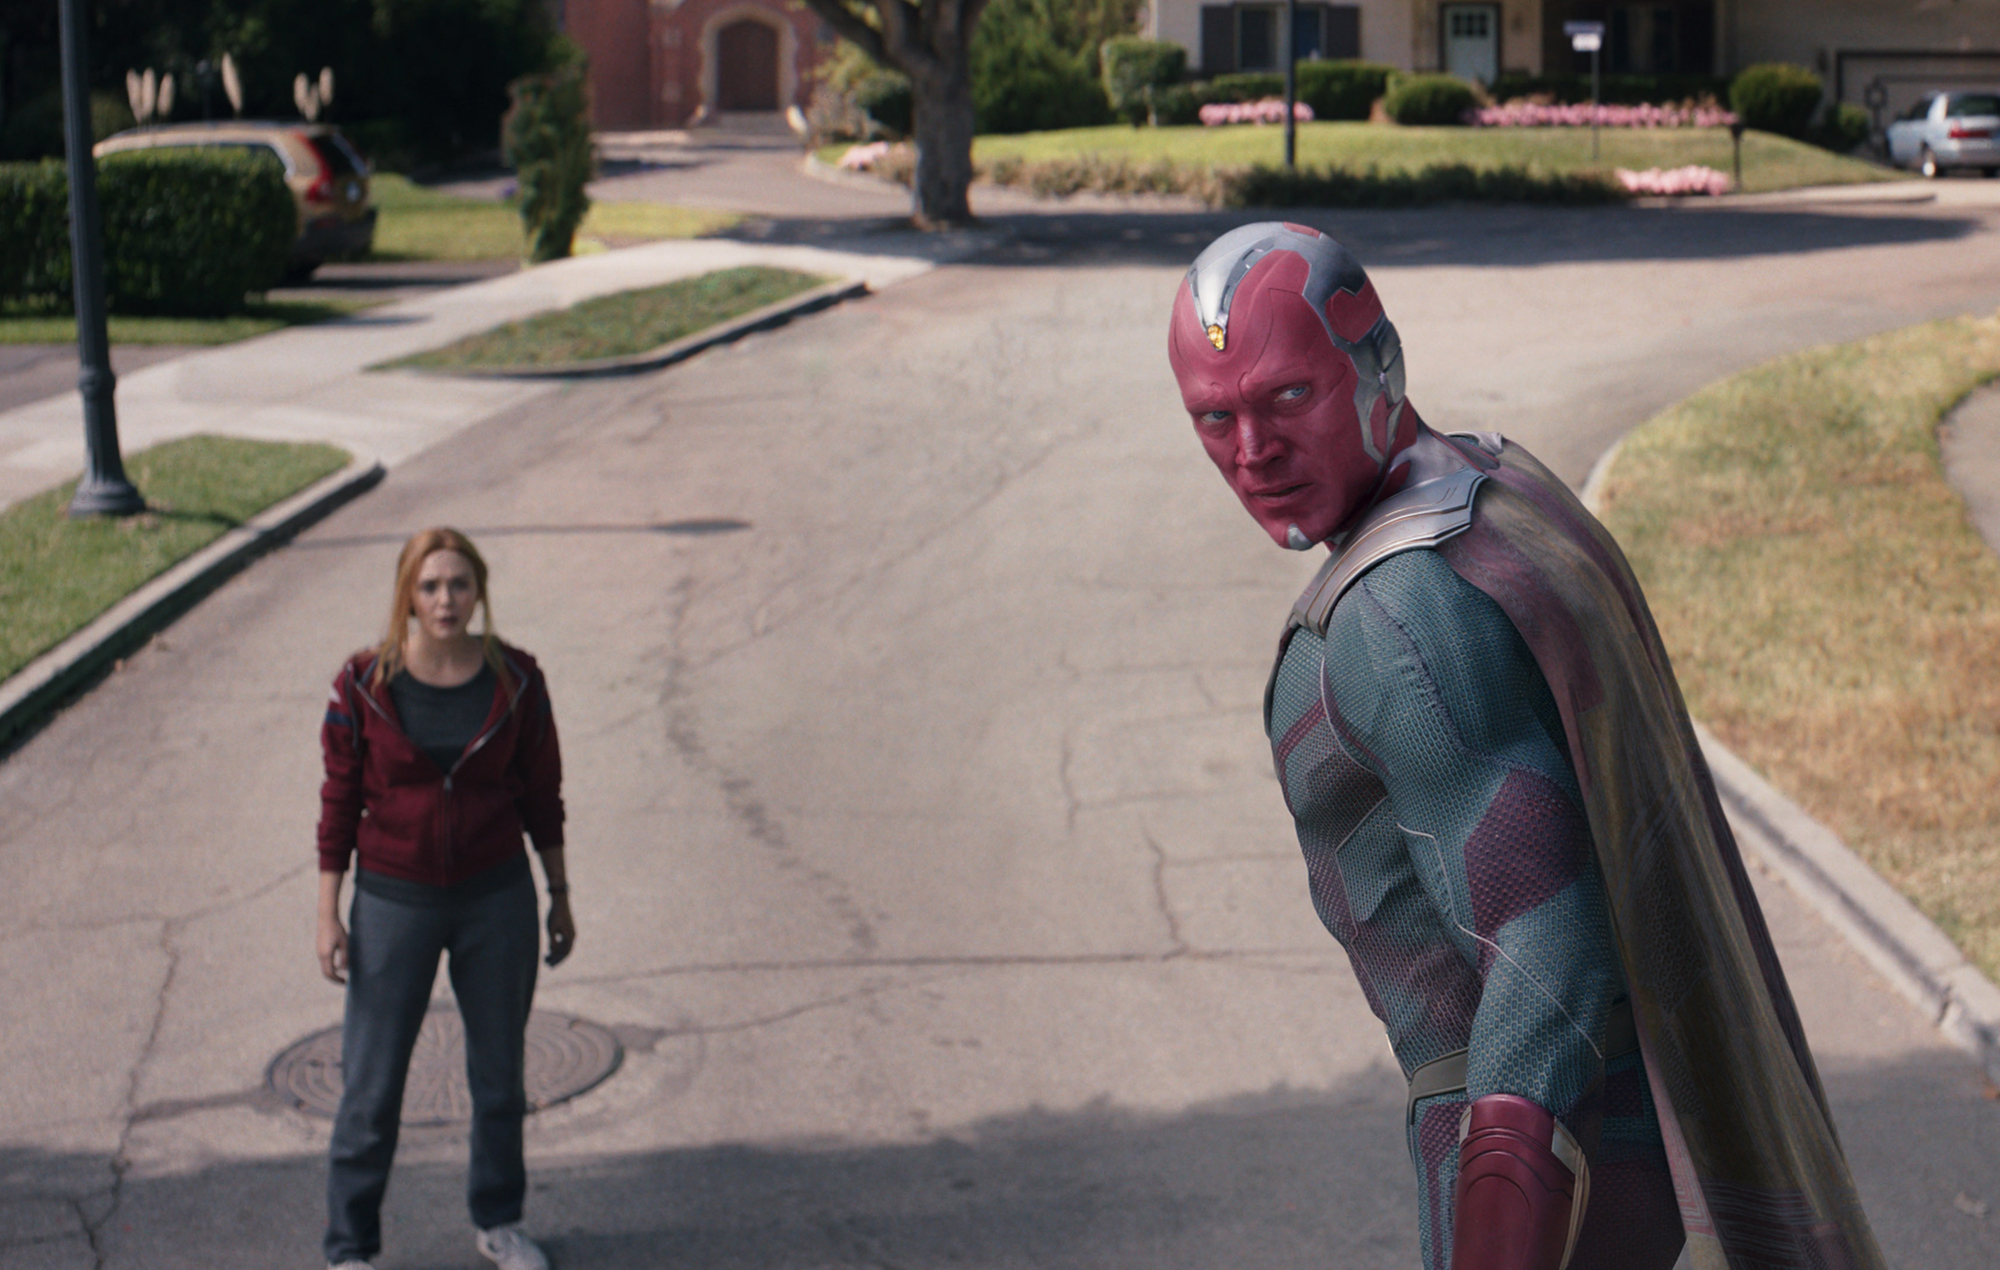 Vision died, remember? Suddenly, tadaa he's back.